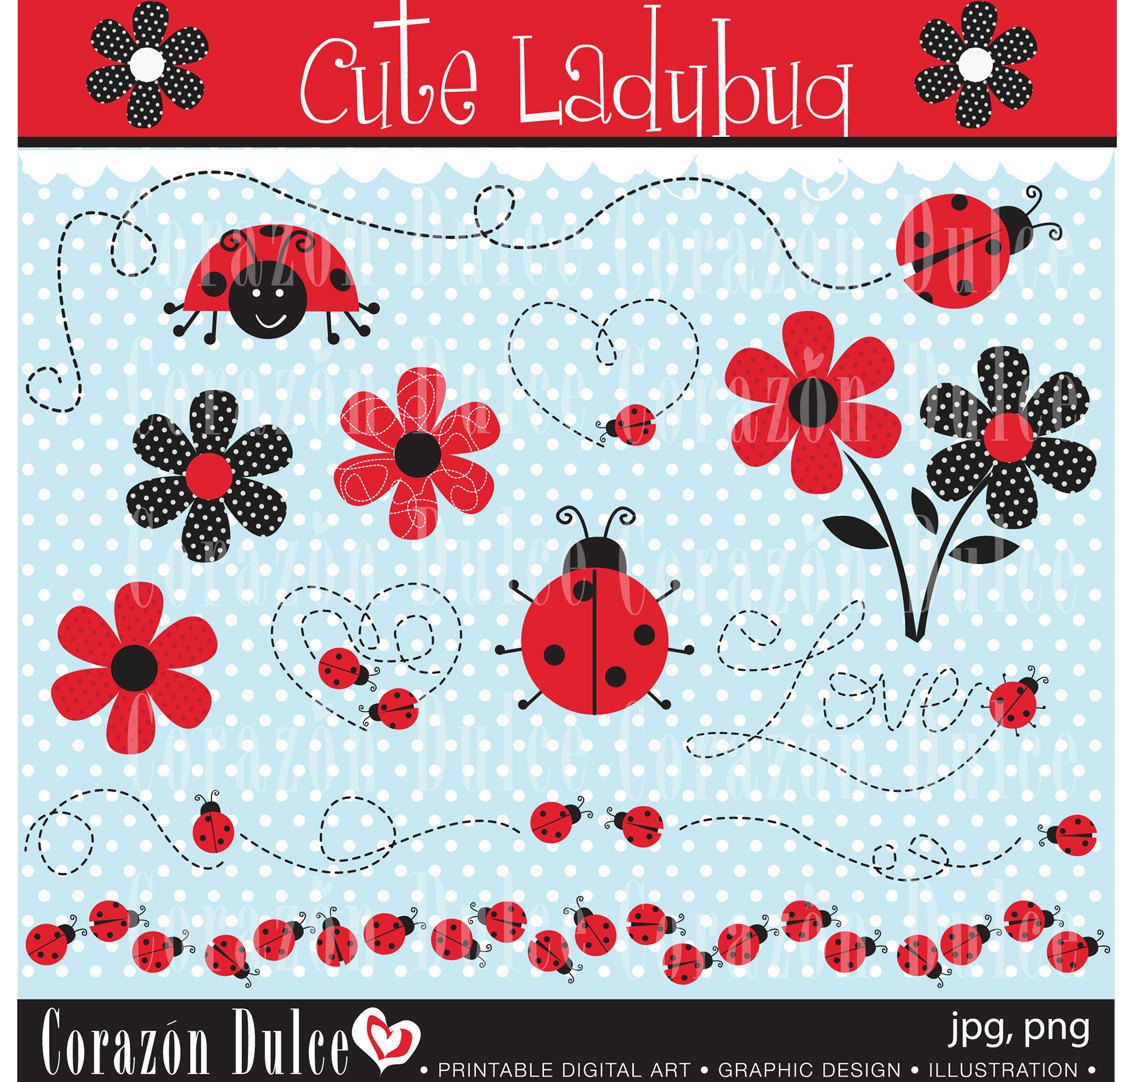 Cute ladybug Digital Clip Art Set Personal and by corazondulce.